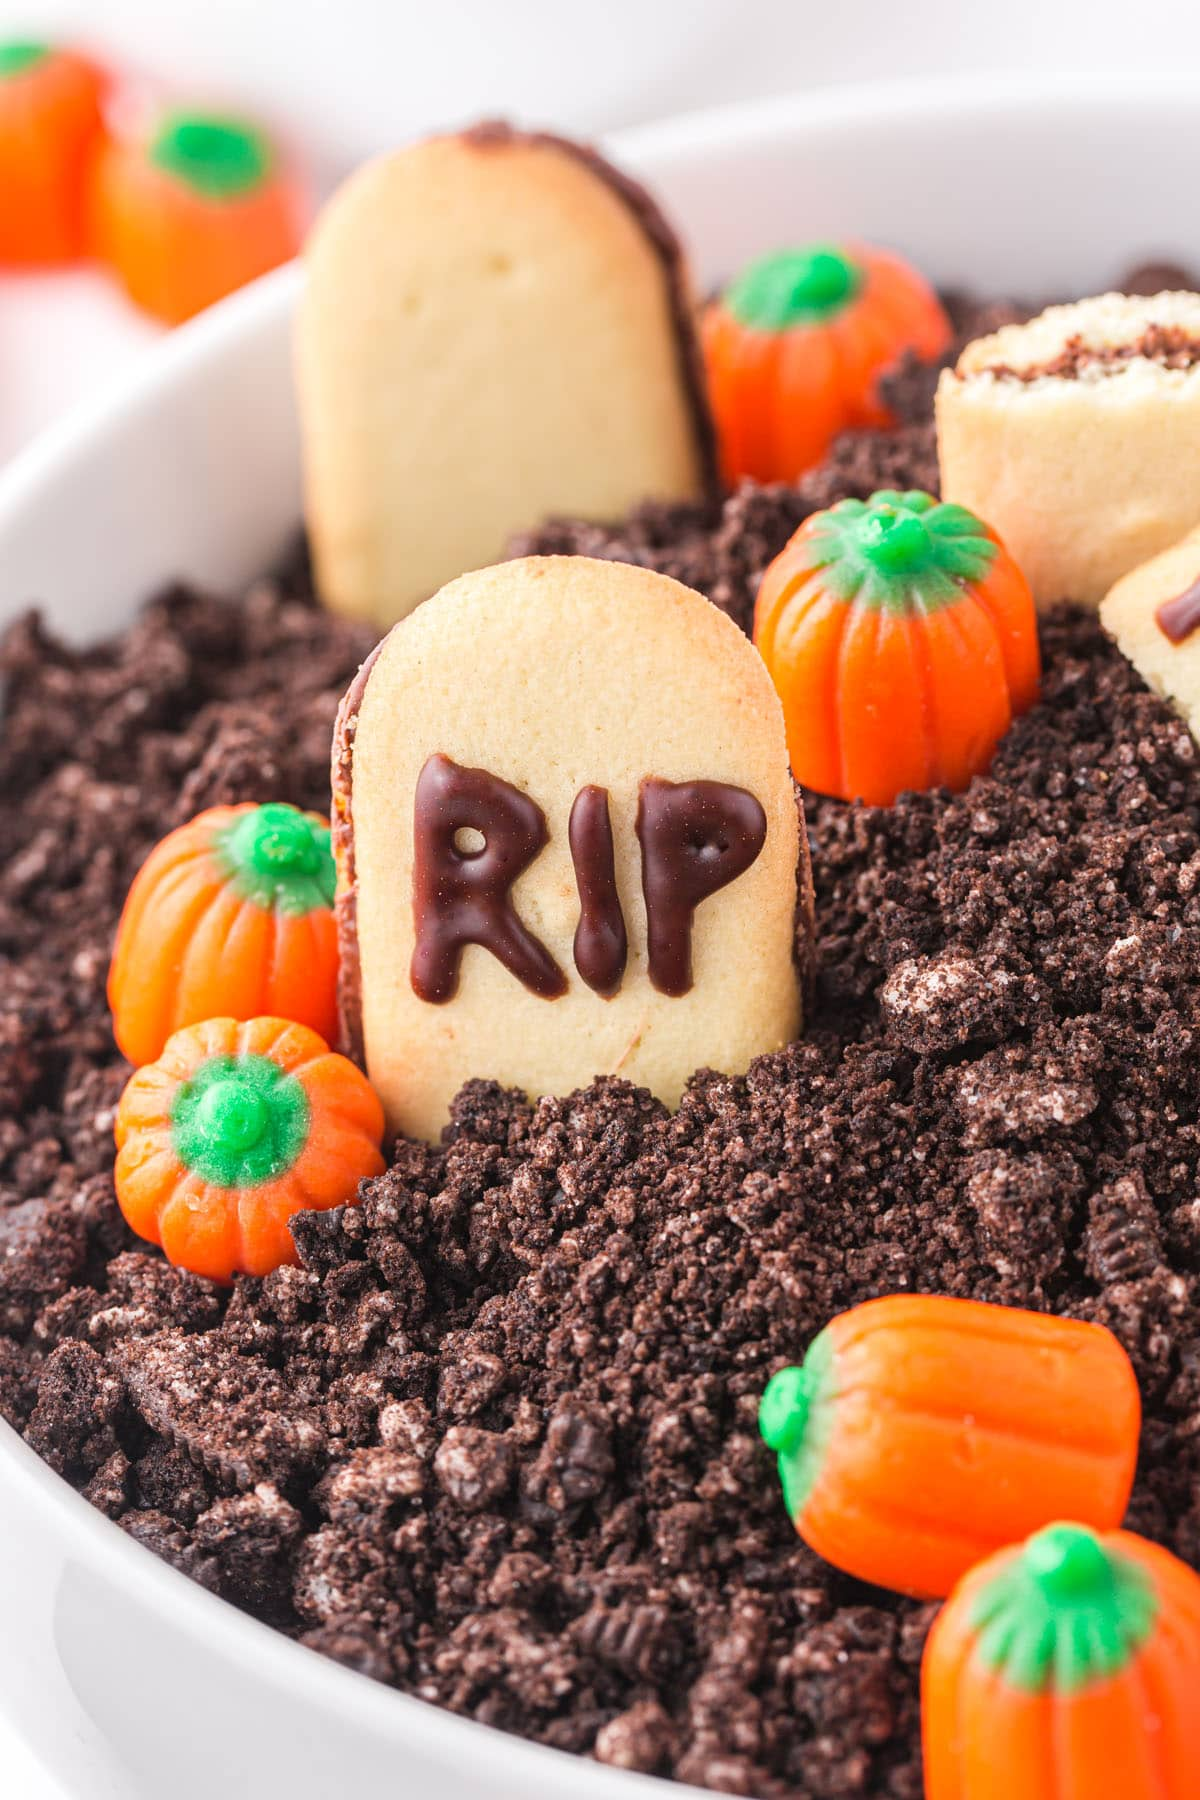 Halloween Graveyard Dip zoomed in showing only the RIP biscuit